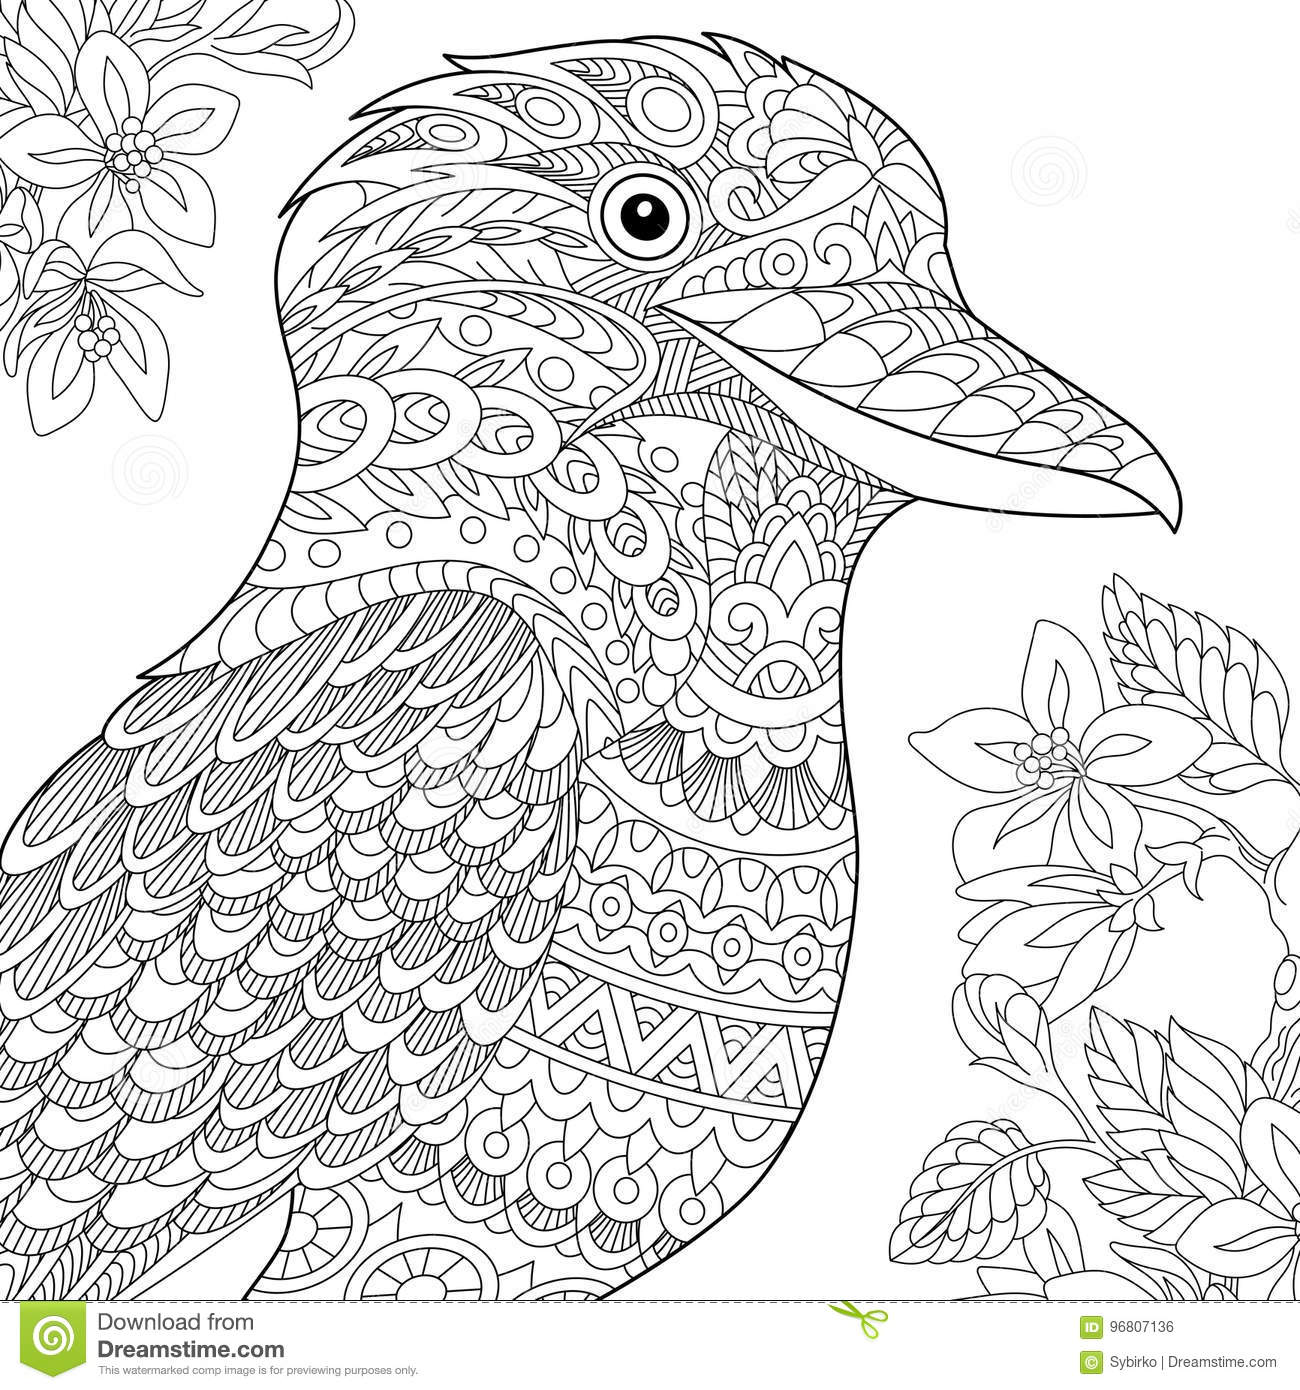 Zentangle Stylized Kookaburra Bird Stock Vector